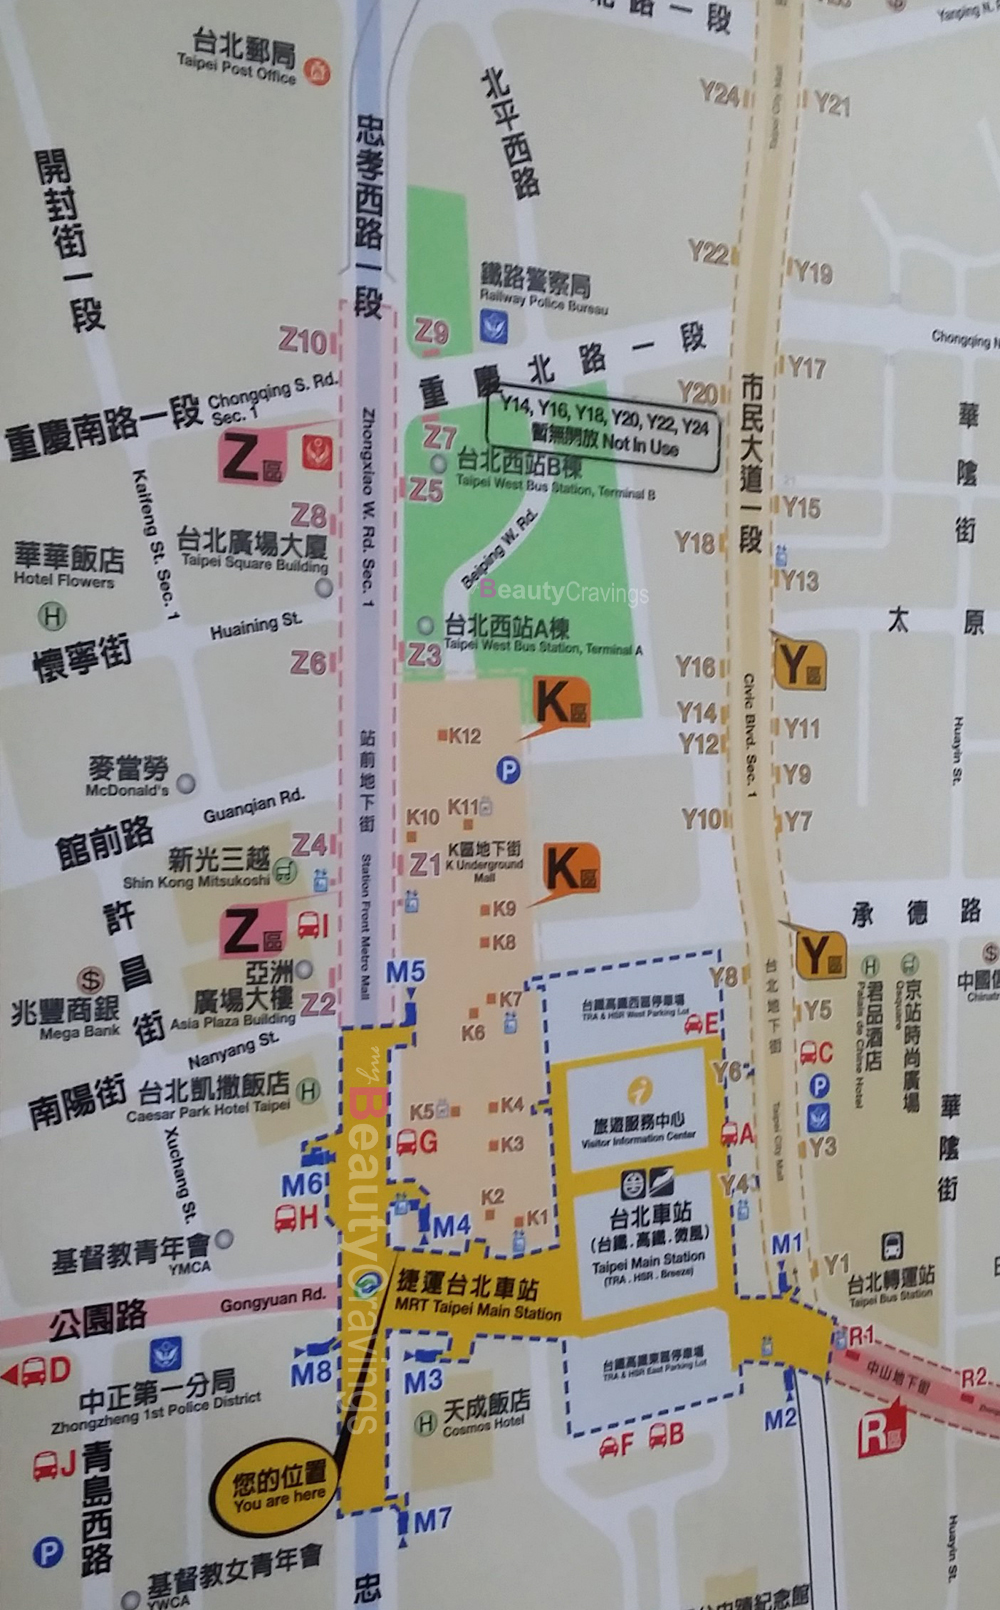 Taipei Main Station Map